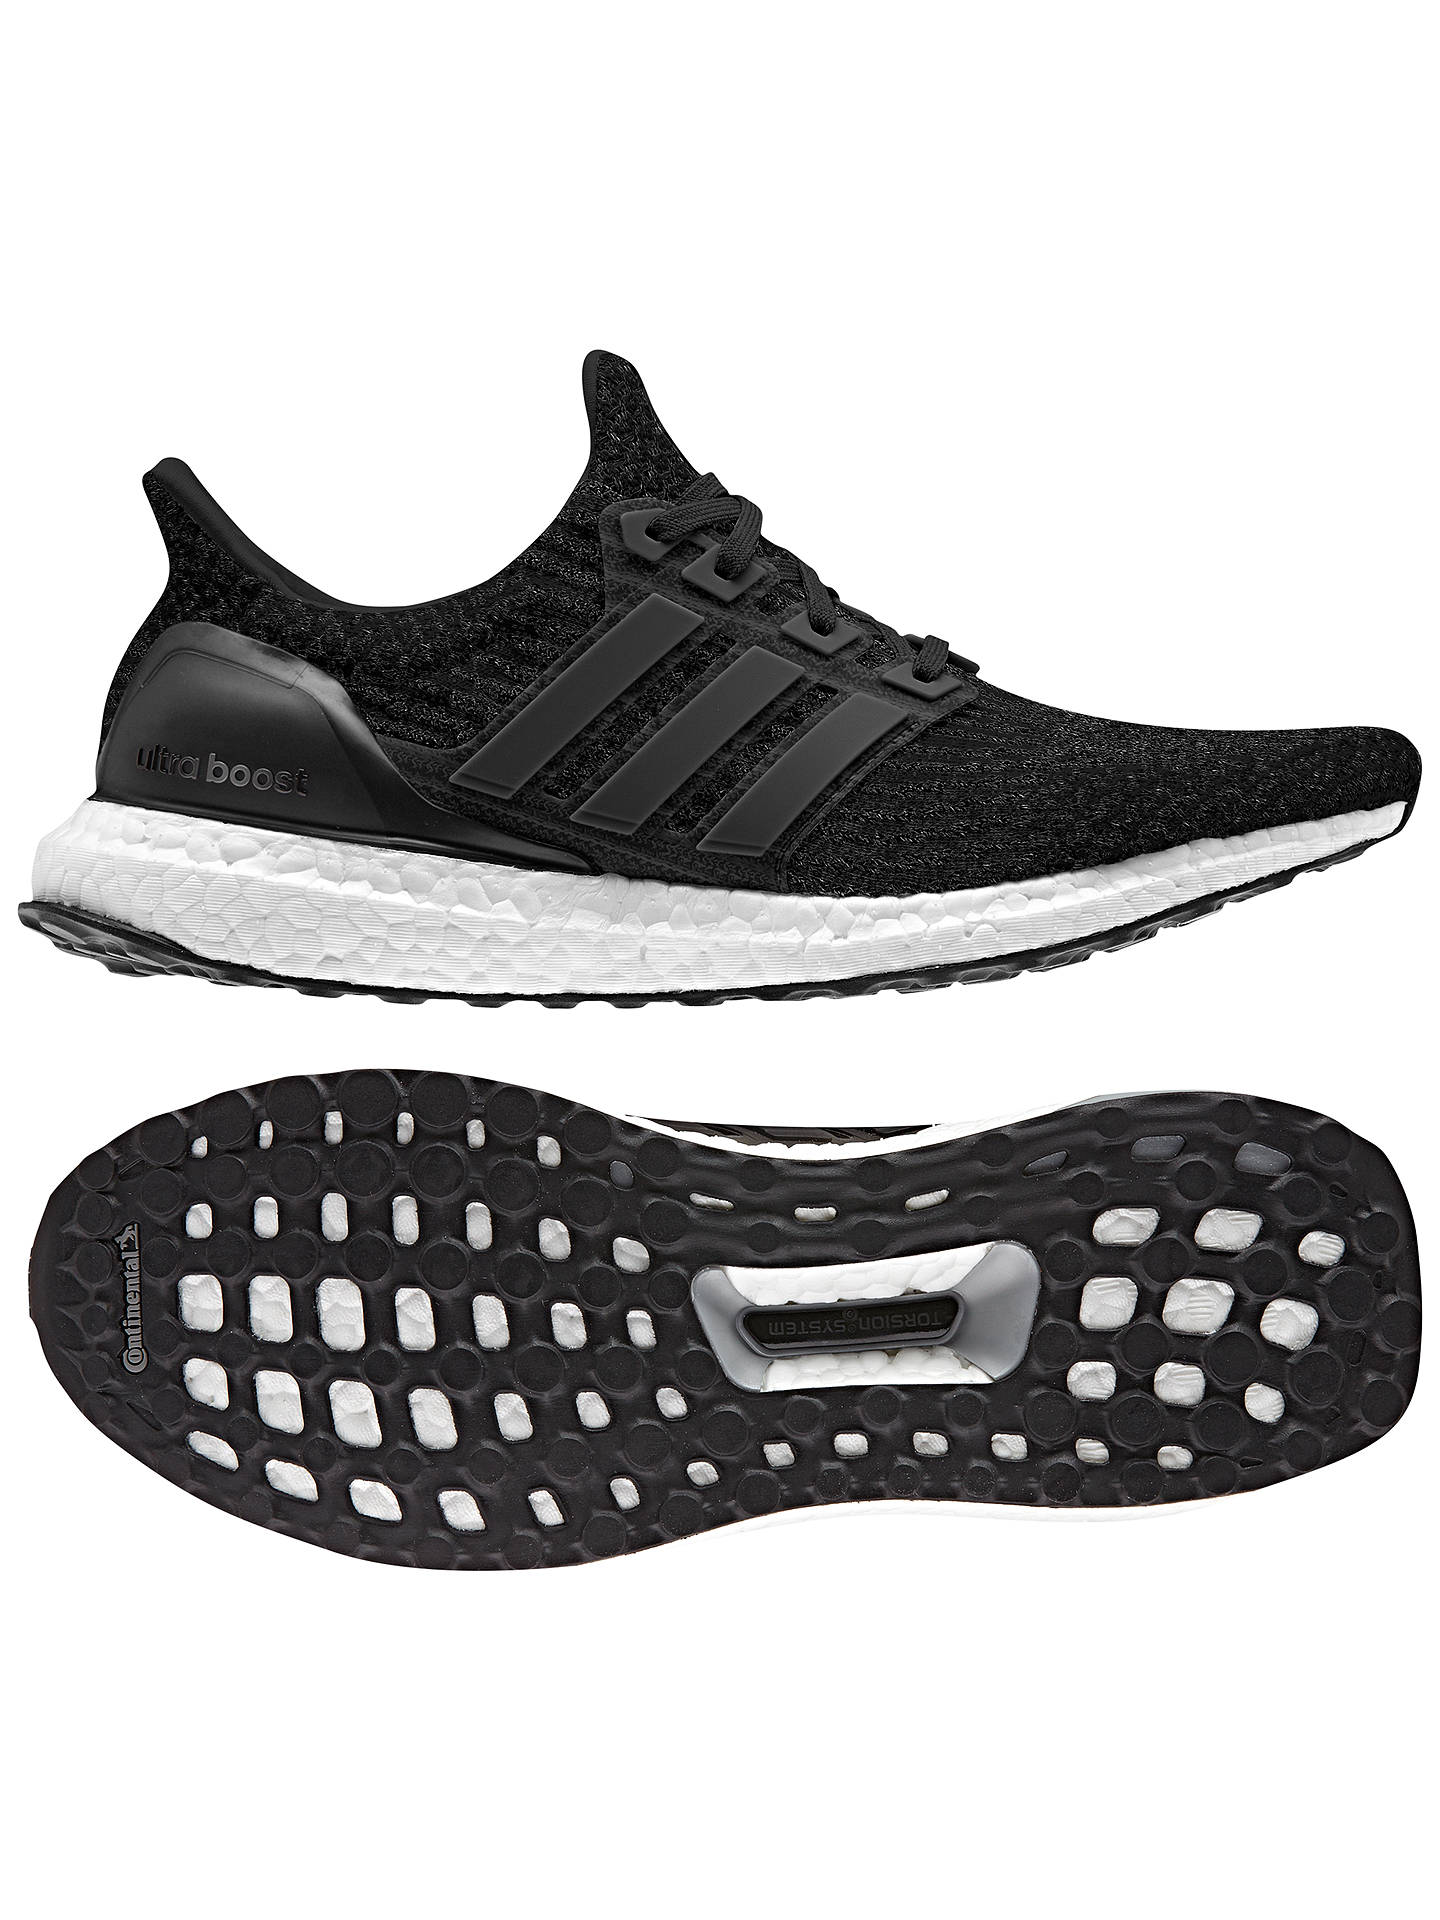 a3ce2f345f48c ... Buy adidas Ultra Boost Women s Running Shoes